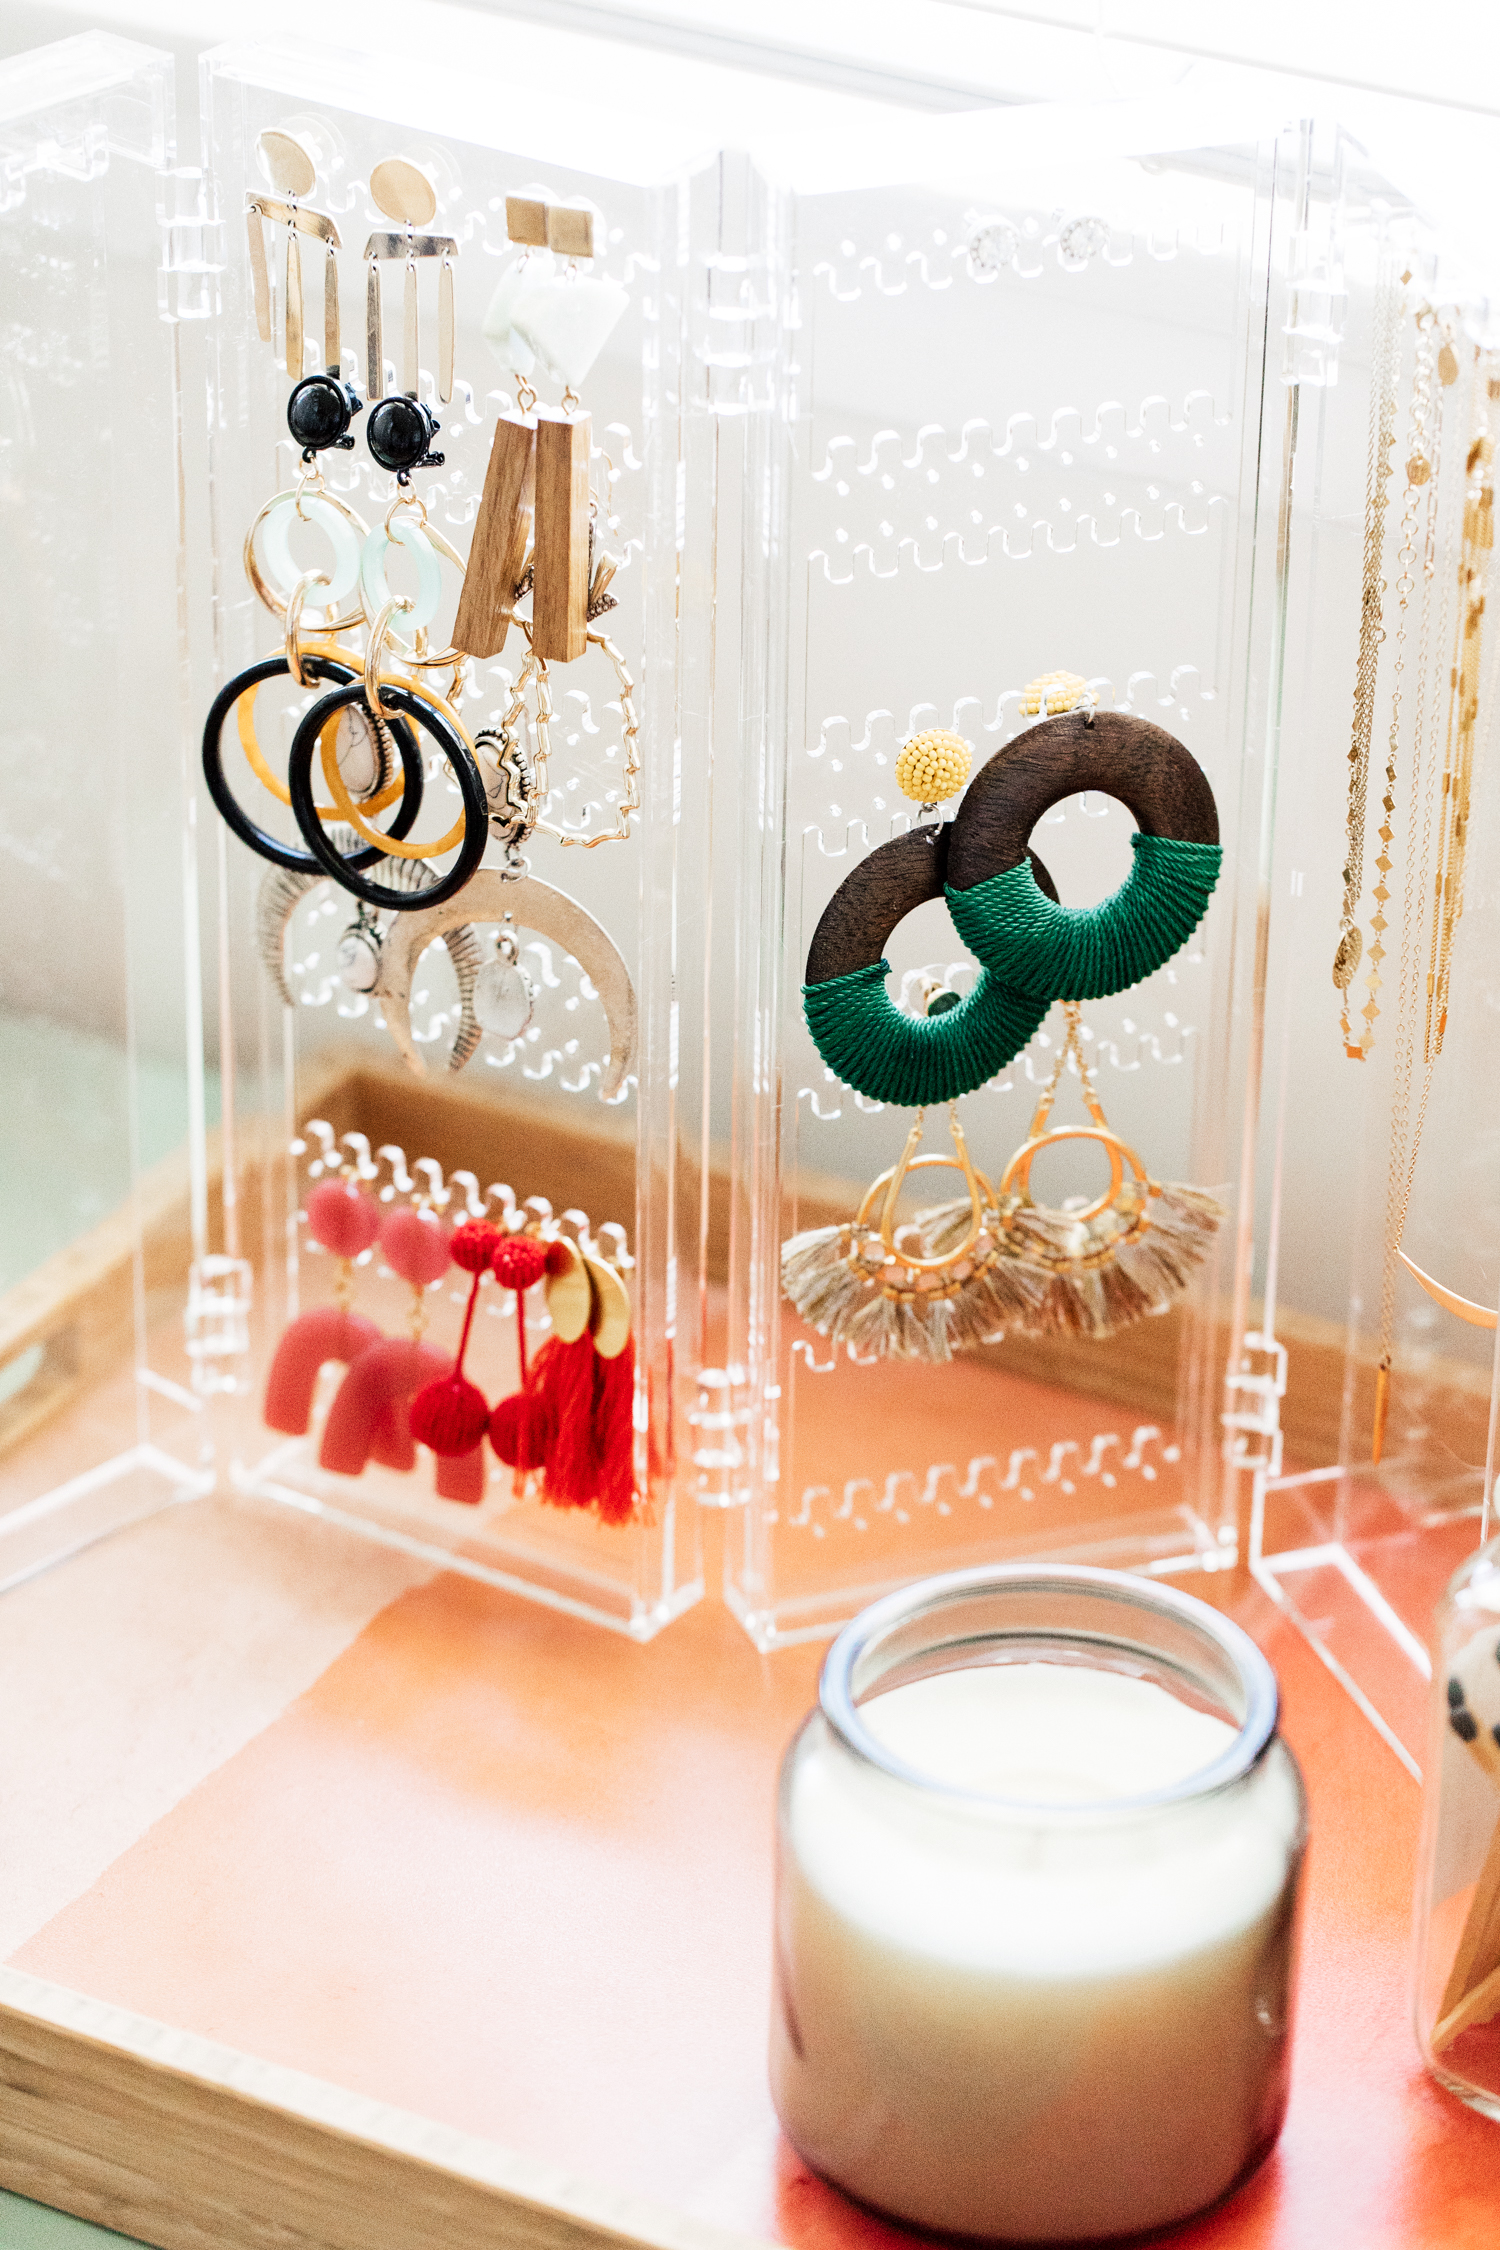 Earrings + Necklace Organizer from The Container Store